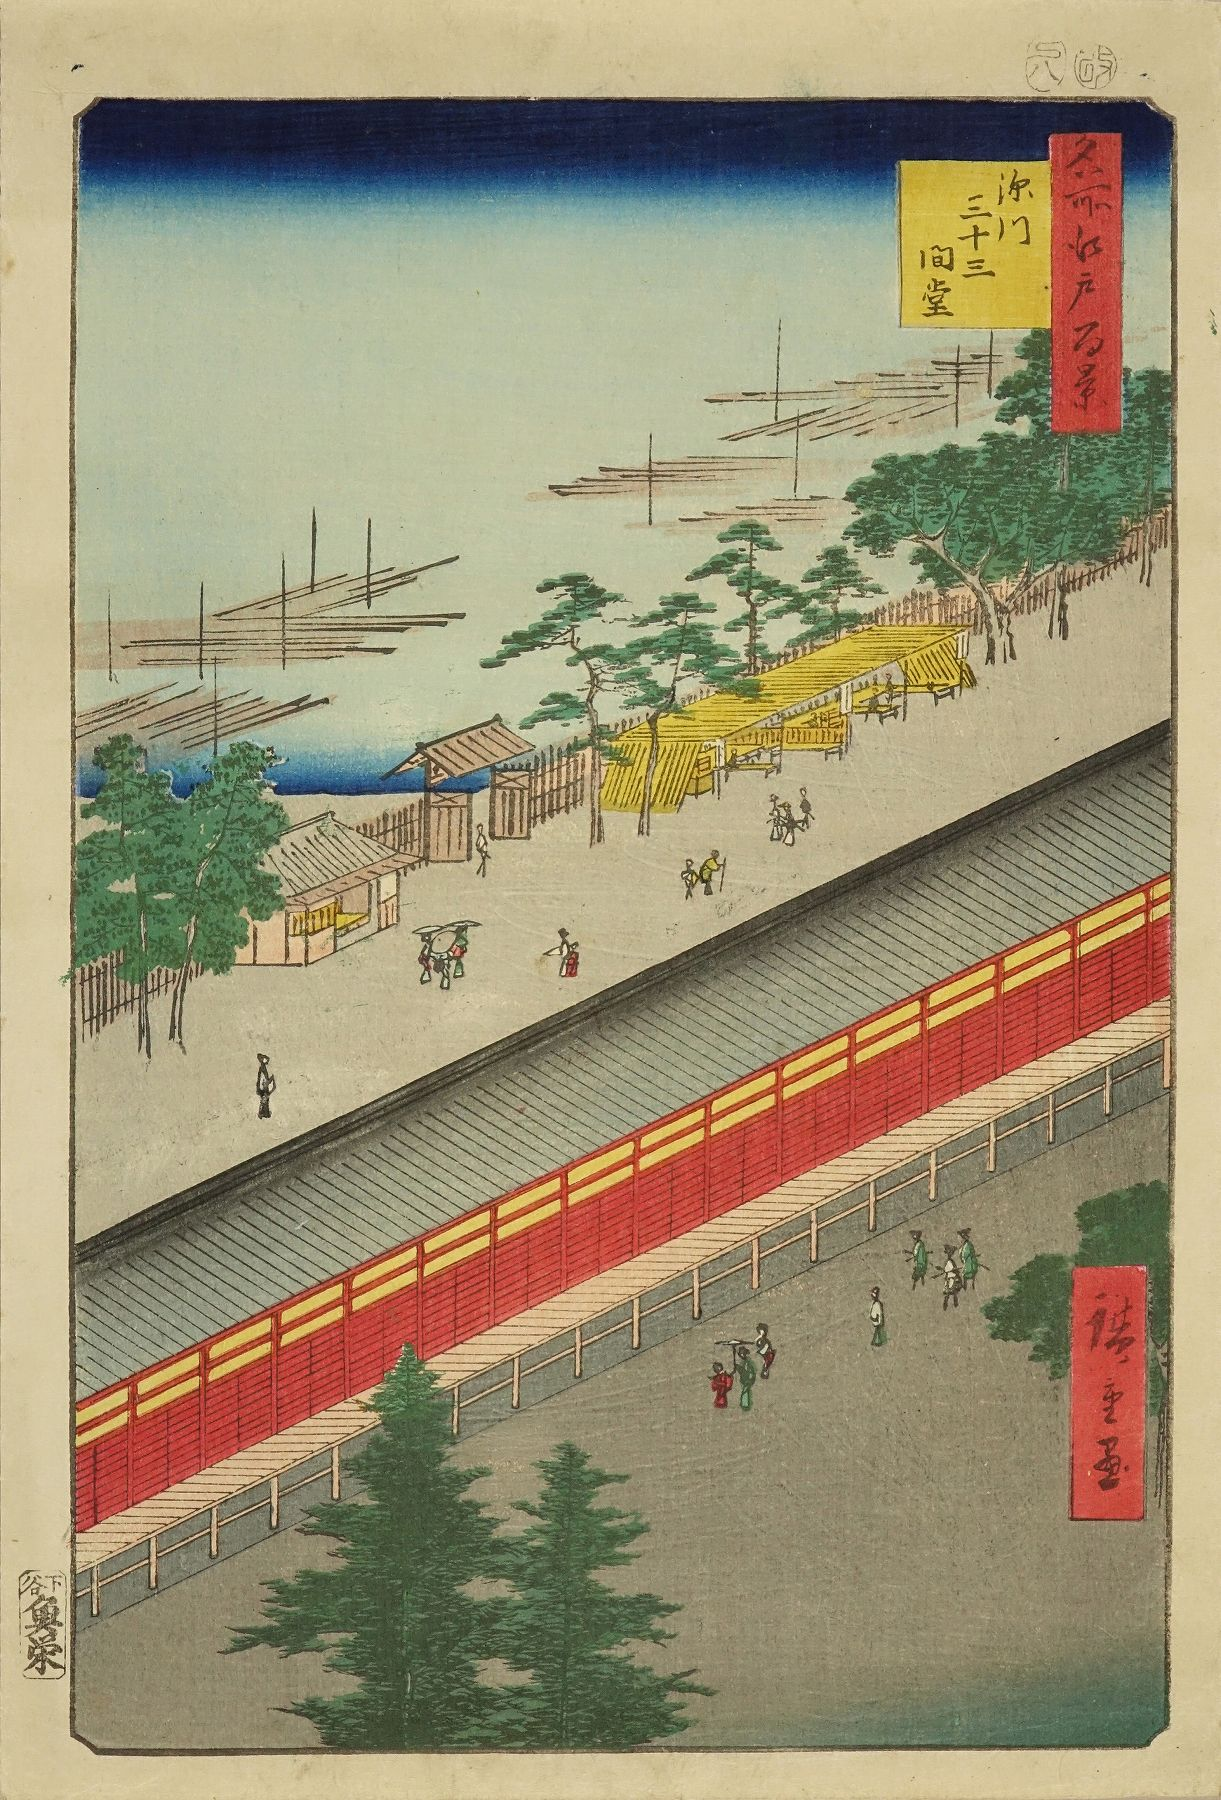 HIROSHIGE Sanjusangen Hall, Fukagawa, from <i>Meisho Edo hyakkei</i> (One hundred views of famous places of Edo)